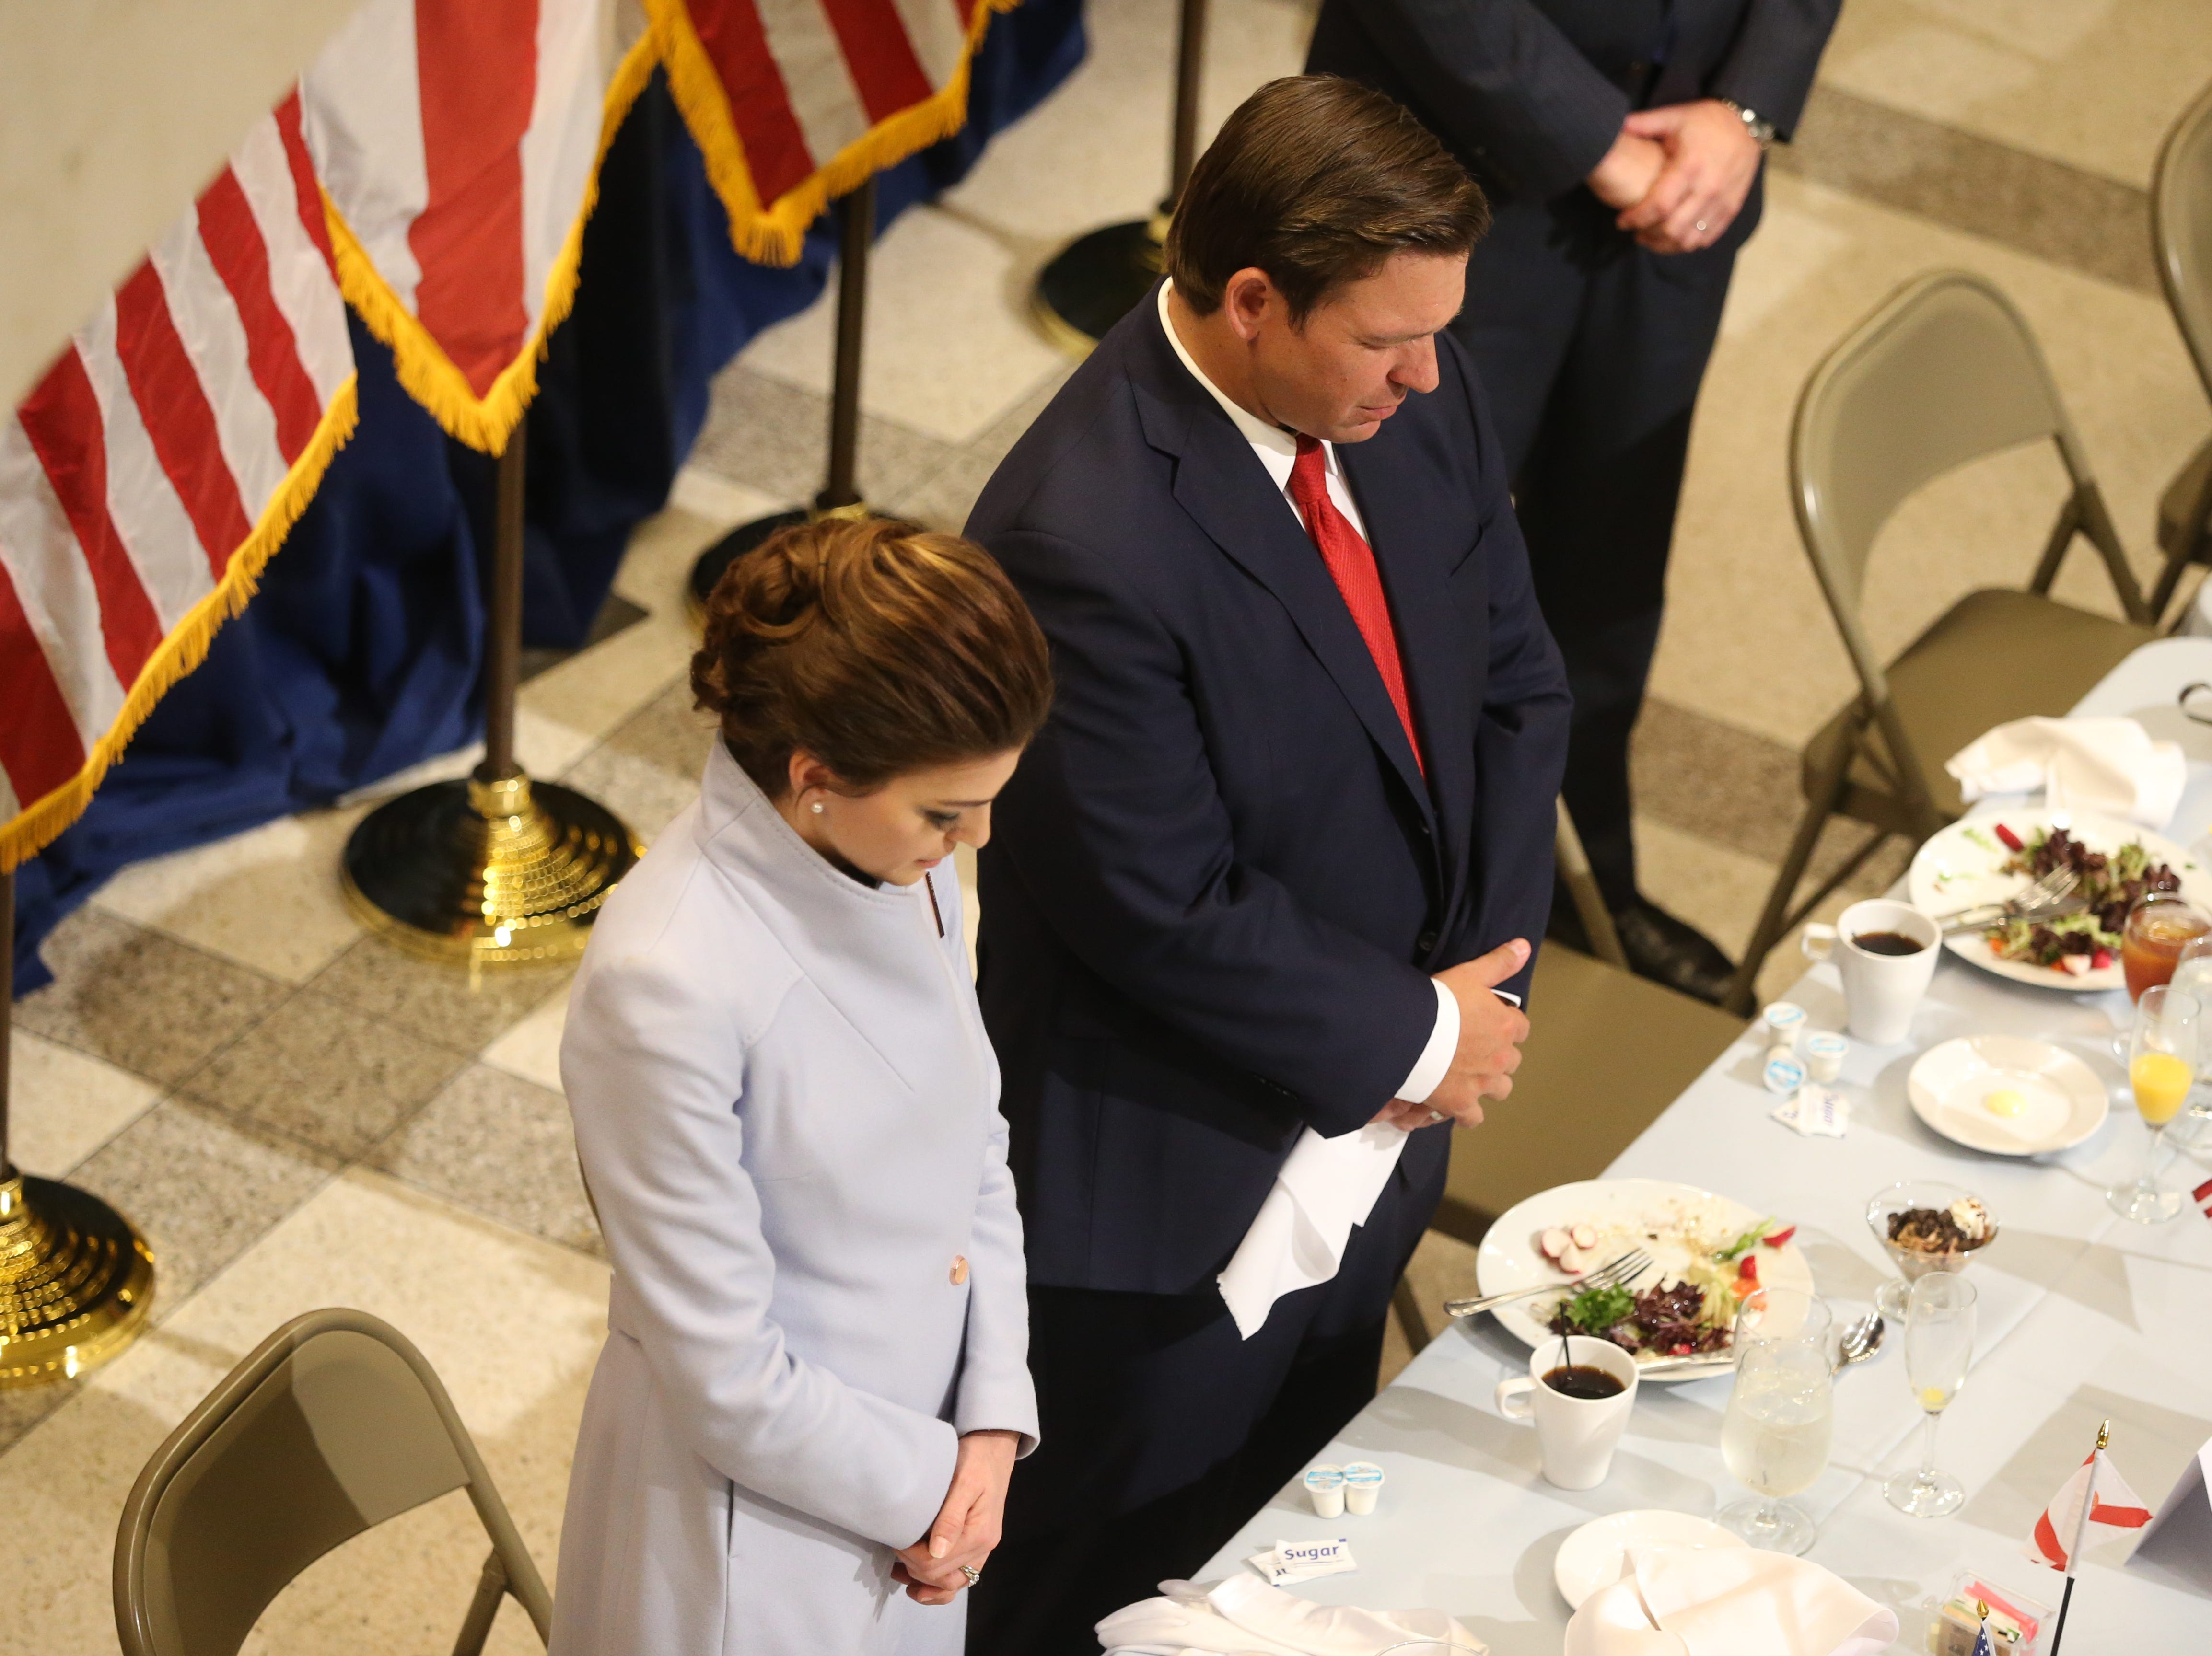 For the first time in Inaugural history, Gov. Ron DeSantis addresses FloridaÕs Legislative leaders and Cabinet officials. DeSantis discusses his plans to work with our stateÕs elected leaders to achieve a Bold Vision for a Brighter Future, Tuesday, Jan. 8, 2019. First lady Casey DeSantis, left, and her husband, Gov. Ron DeSantis bow their head in prayer at the closing of the luncheon.